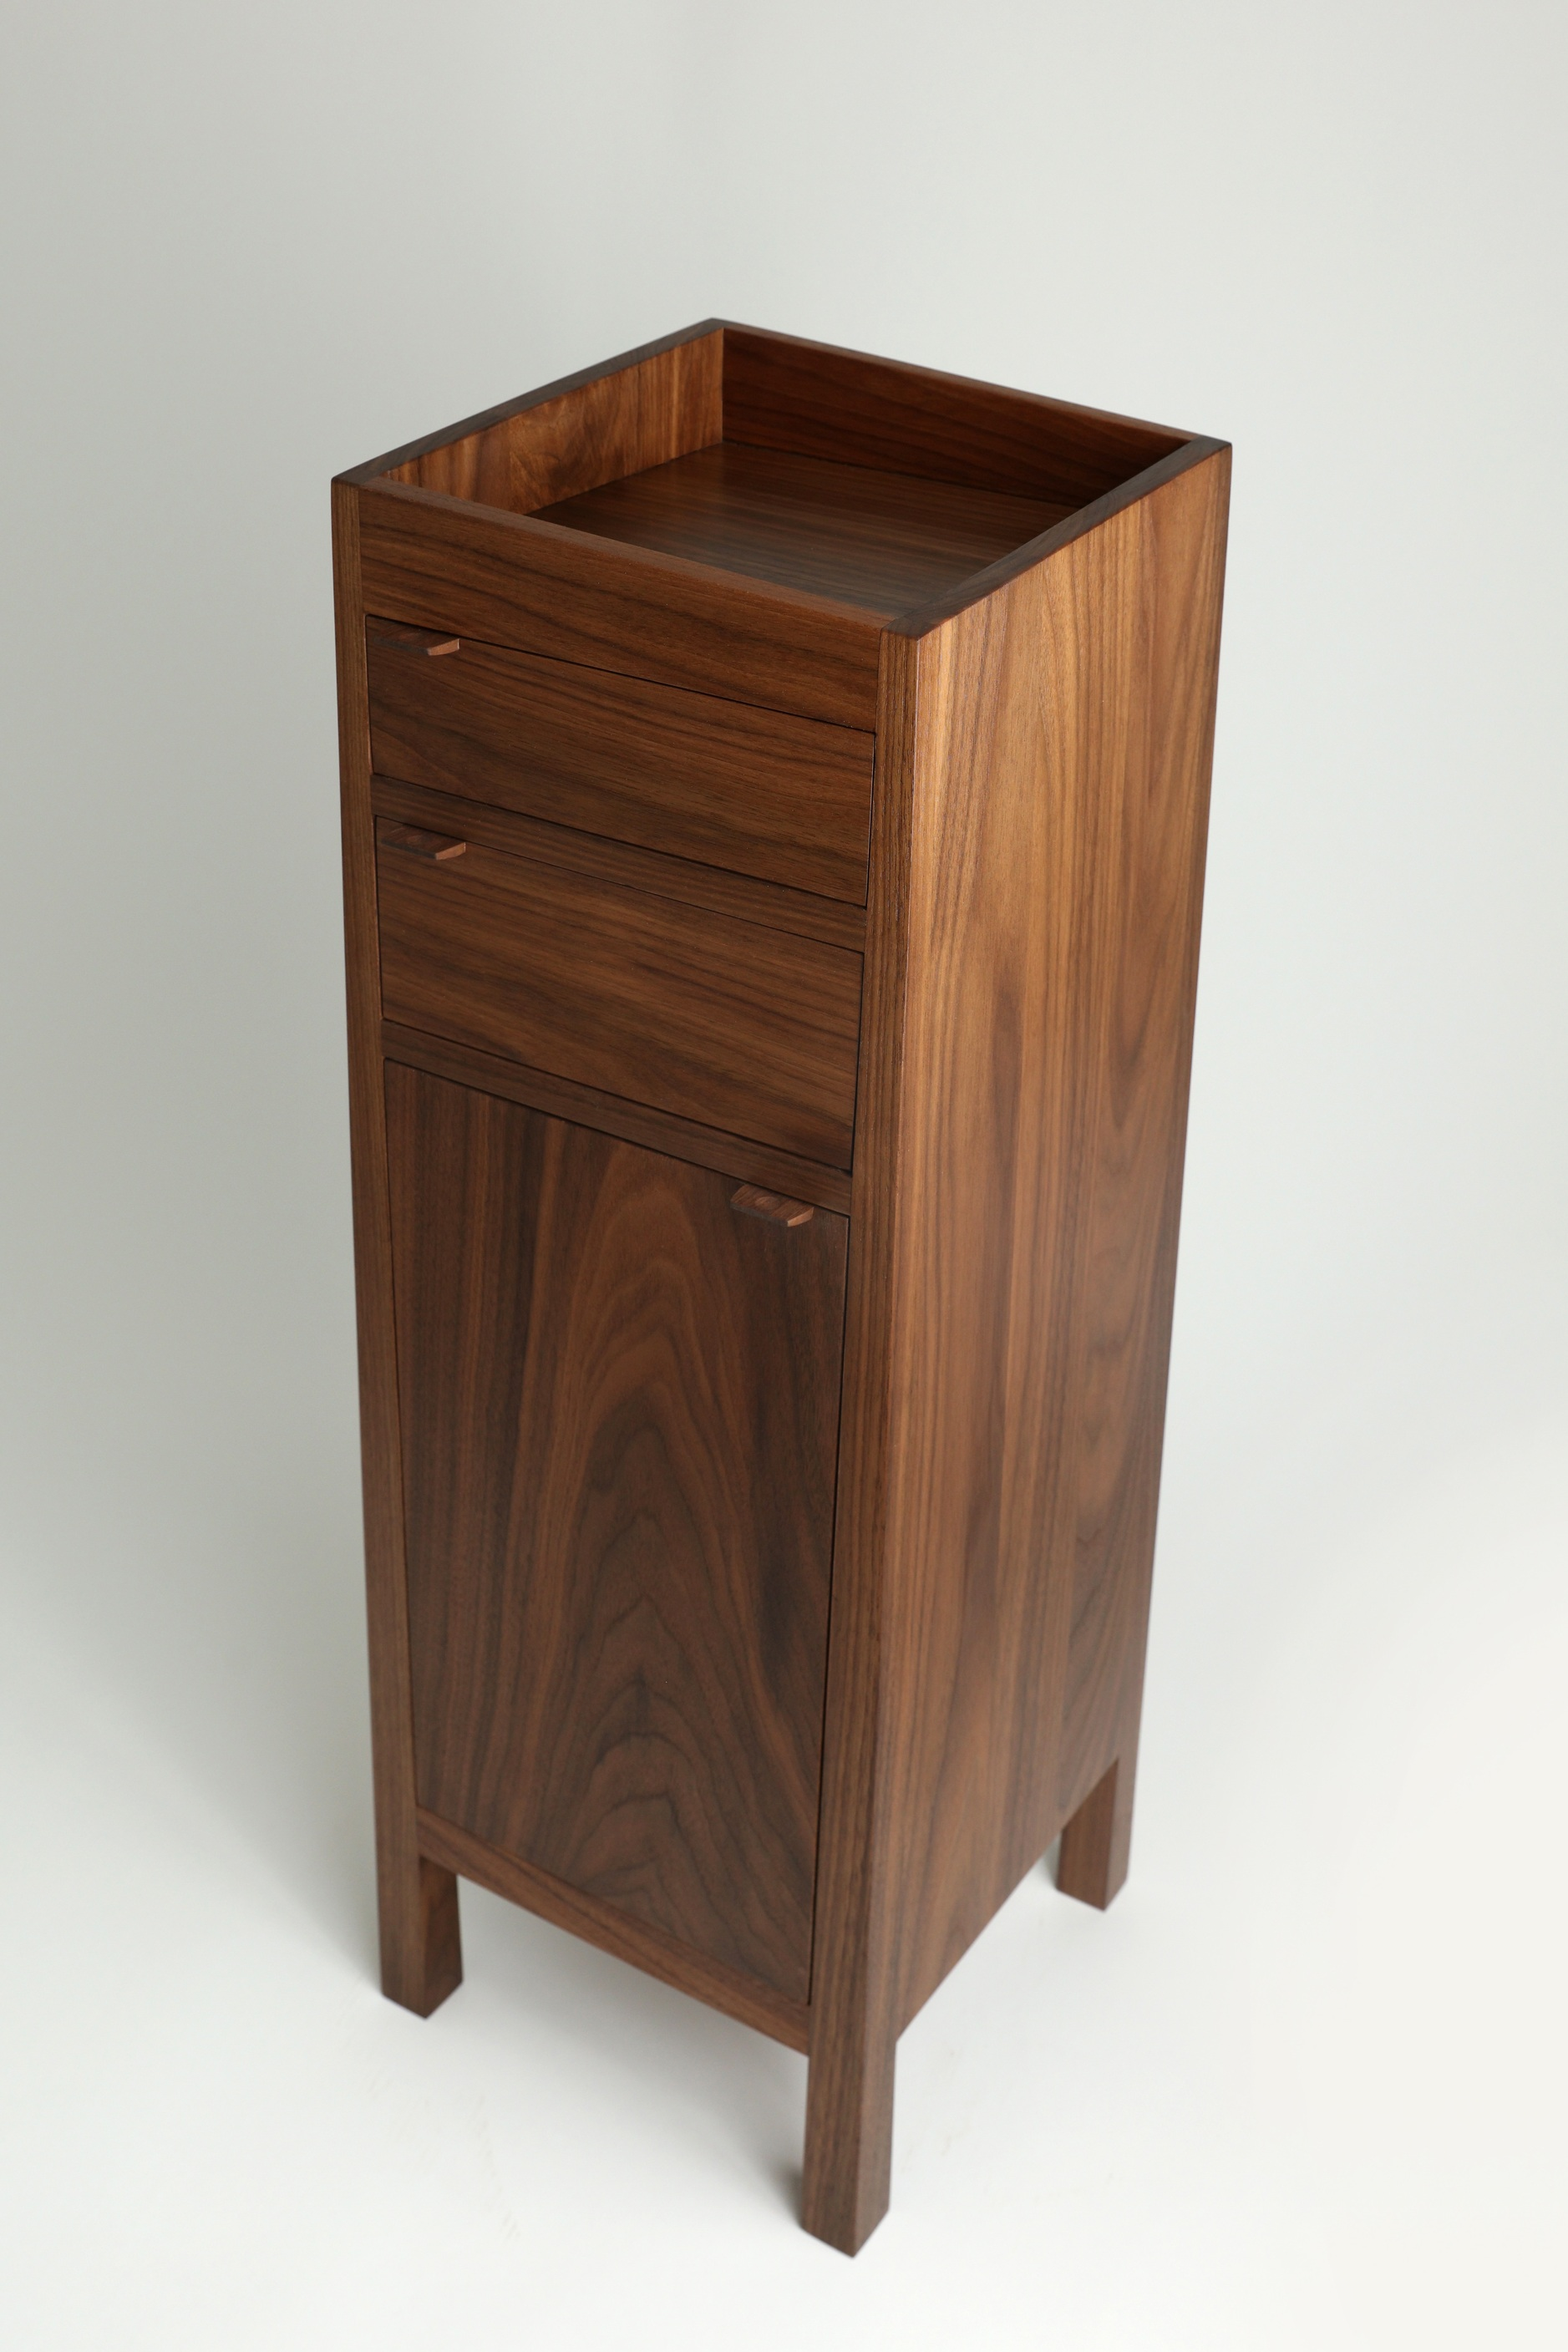 Entryway Stand - This case piece is well-suited to live near an entryway where your favorite objects can be placed in its top tray, drawers and cabinet.The Entryway Stand's clean, modern design makes for a nice accent piece for the home or office.Its drawer and cabinet space also make it an ideal night stand.